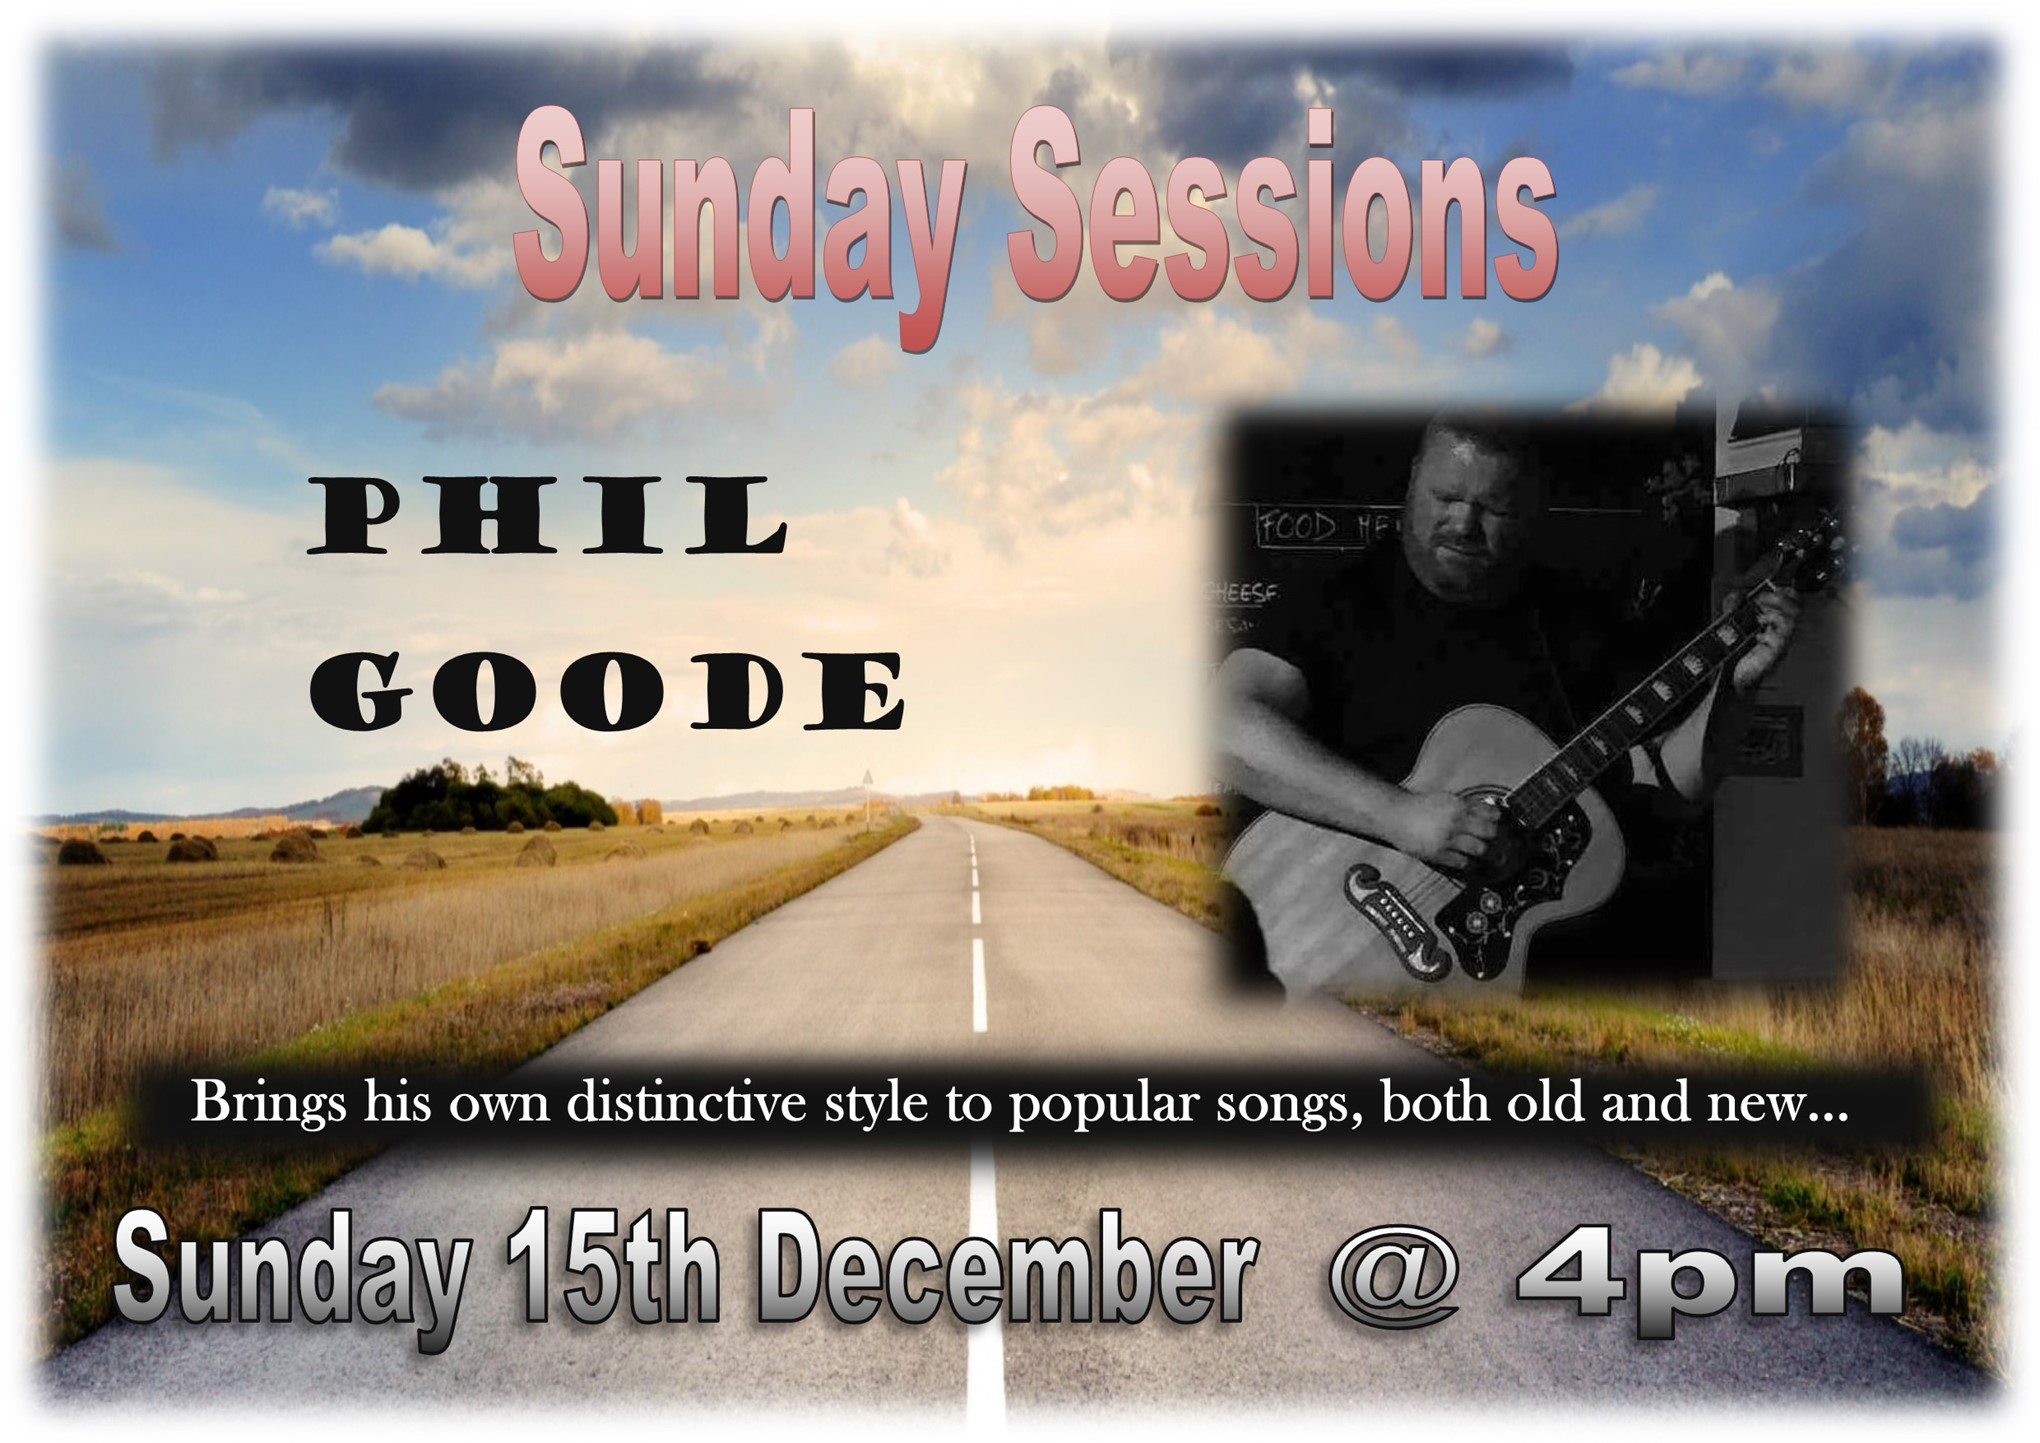 Sunday Sessions with Phil Goode